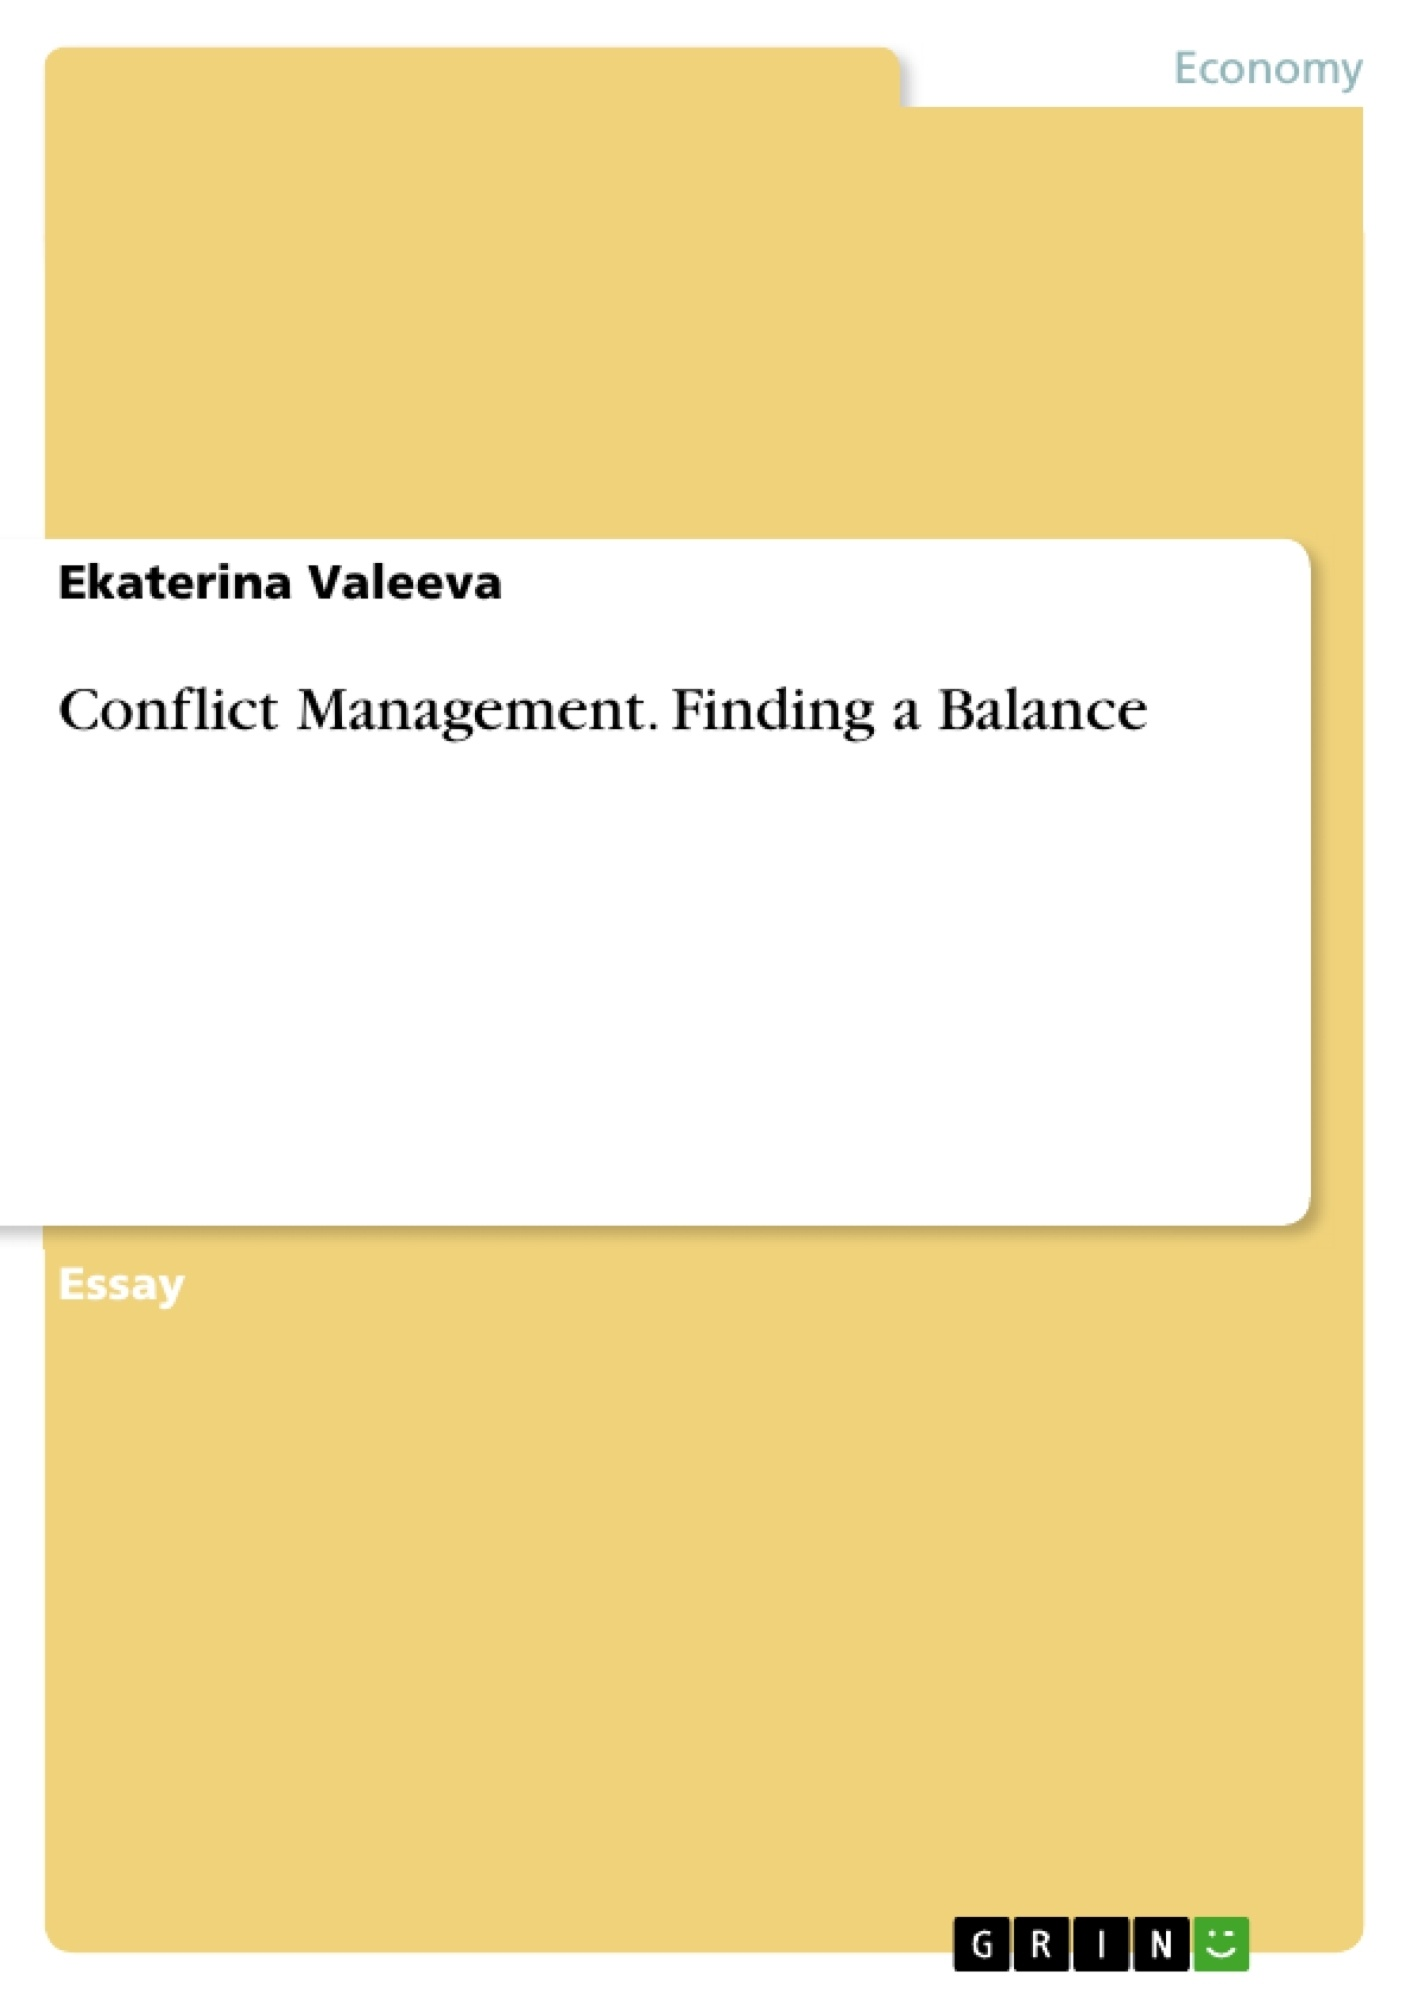 Title: Conflict Management. Finding a Balance